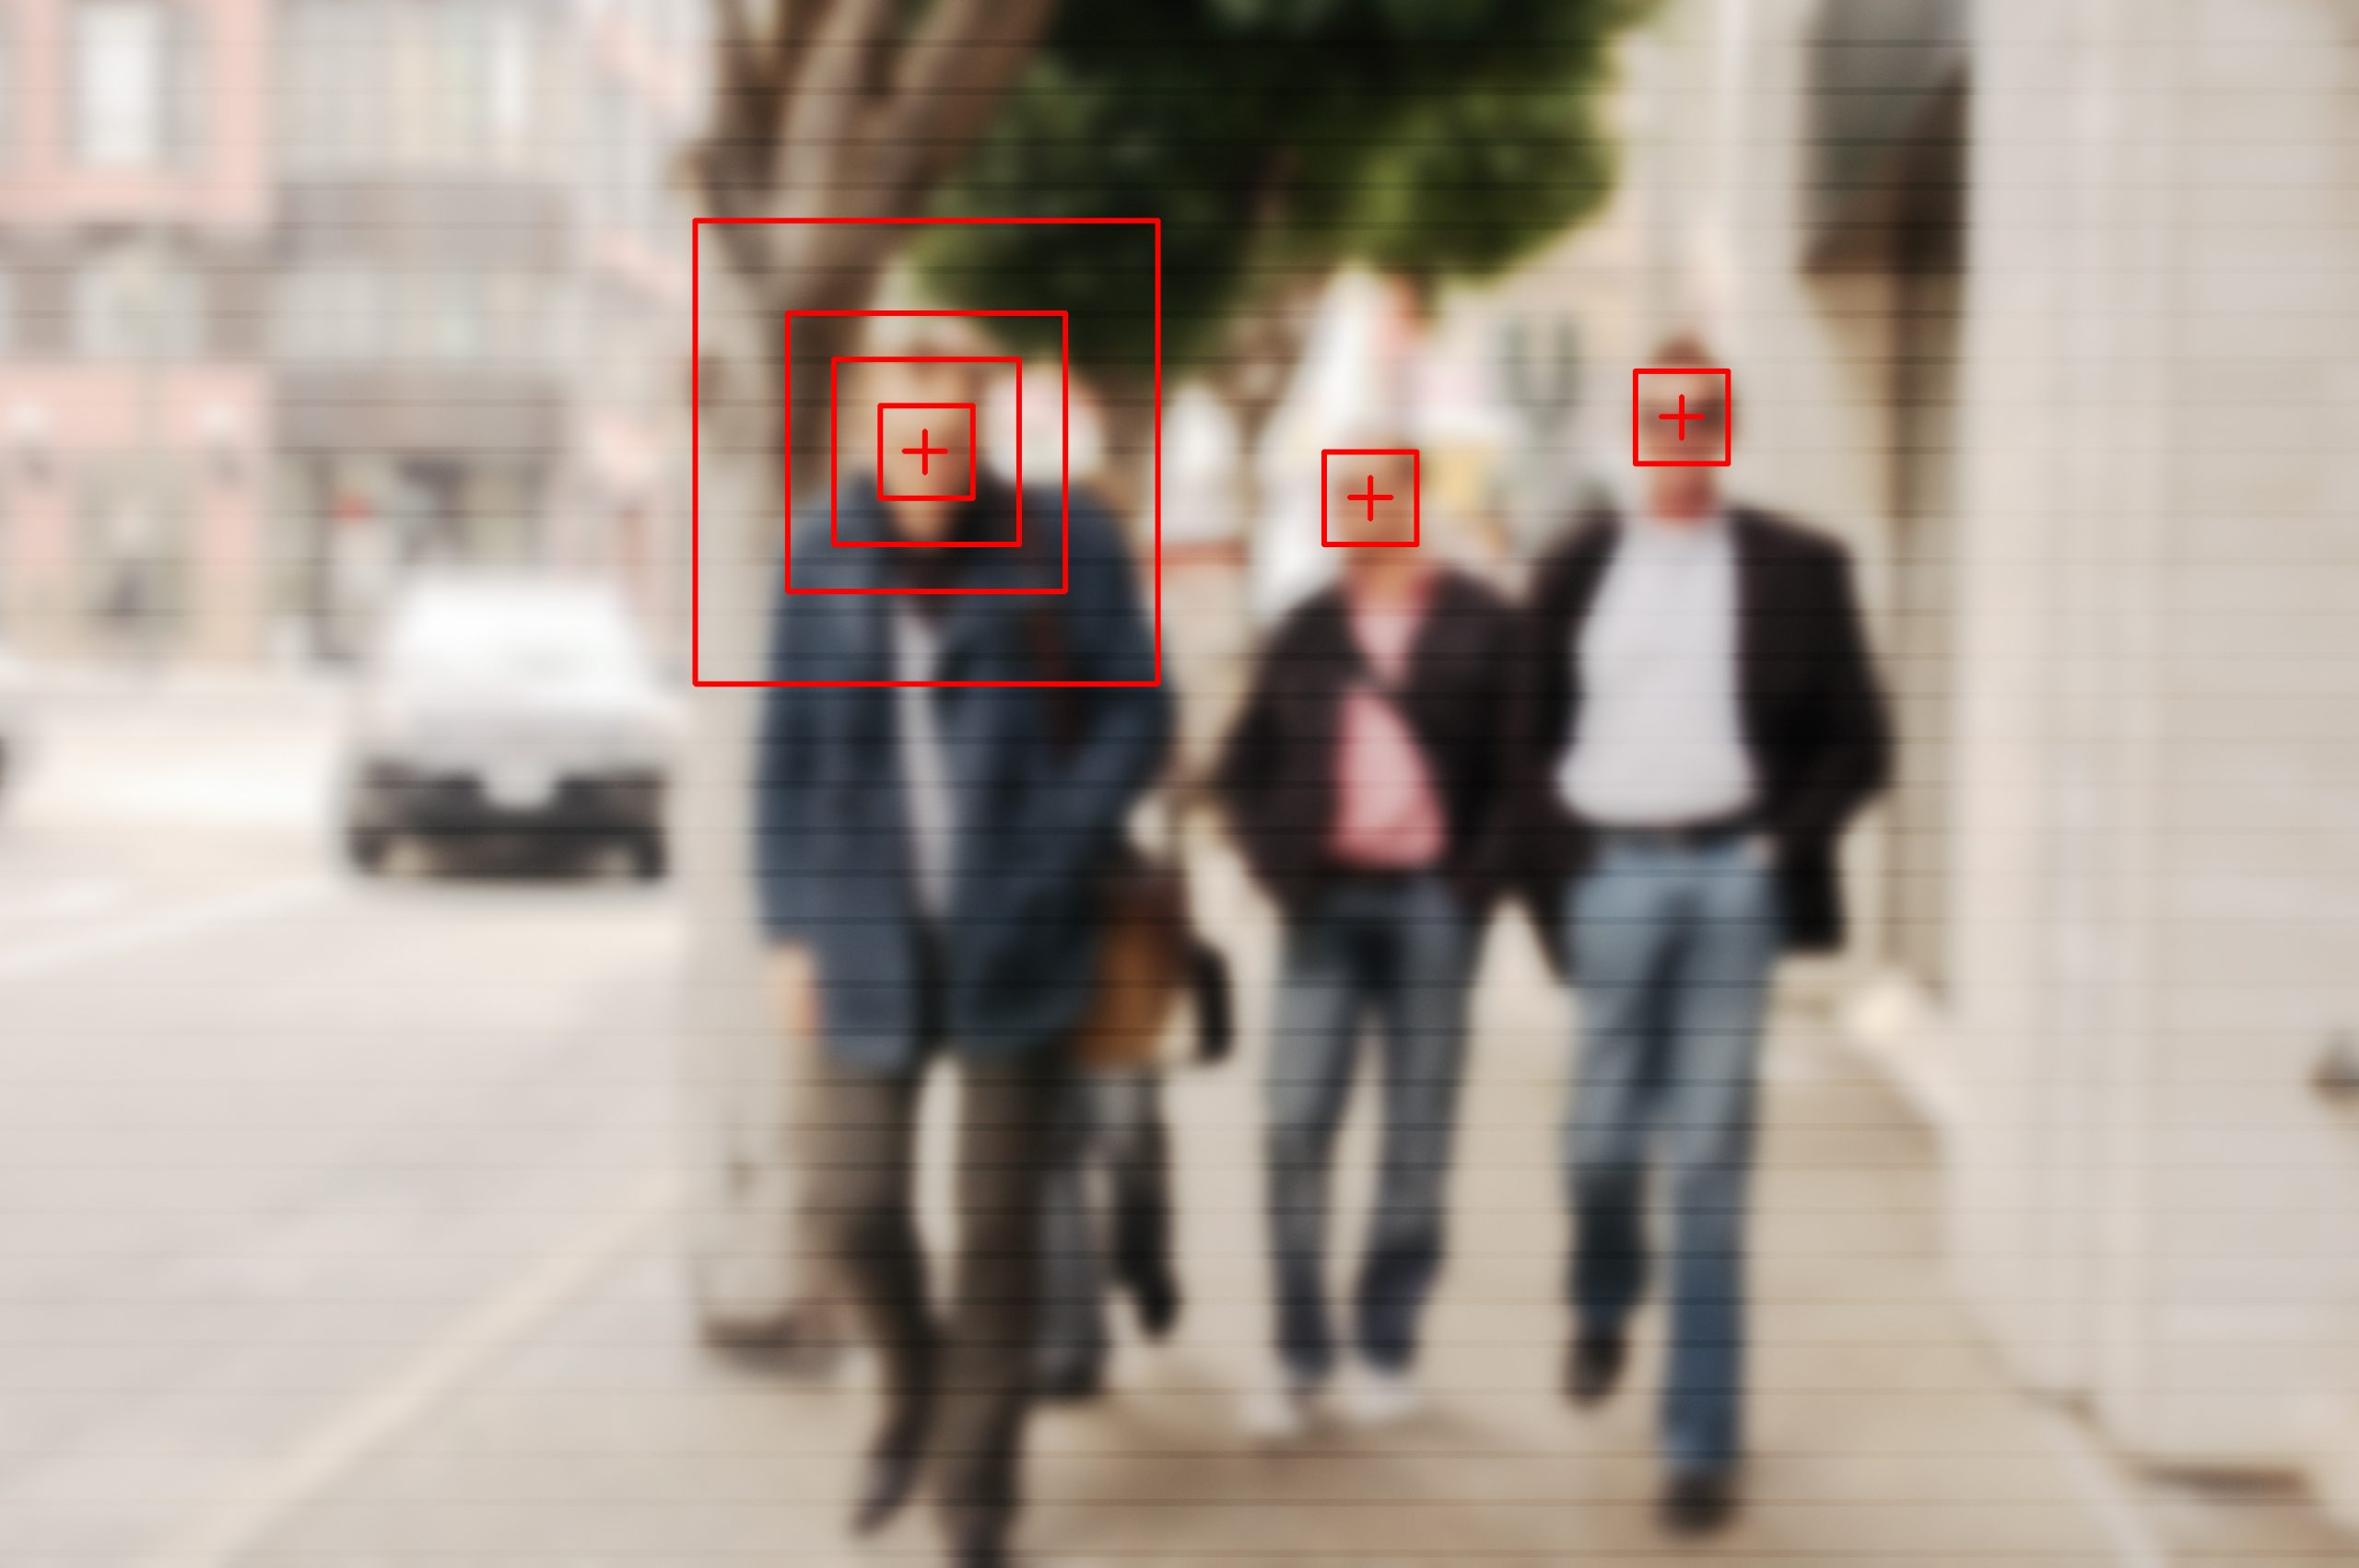 Face recognition signs and tags on people faces. Privacy and personal data protection. Blurred picture with drawn symbols.